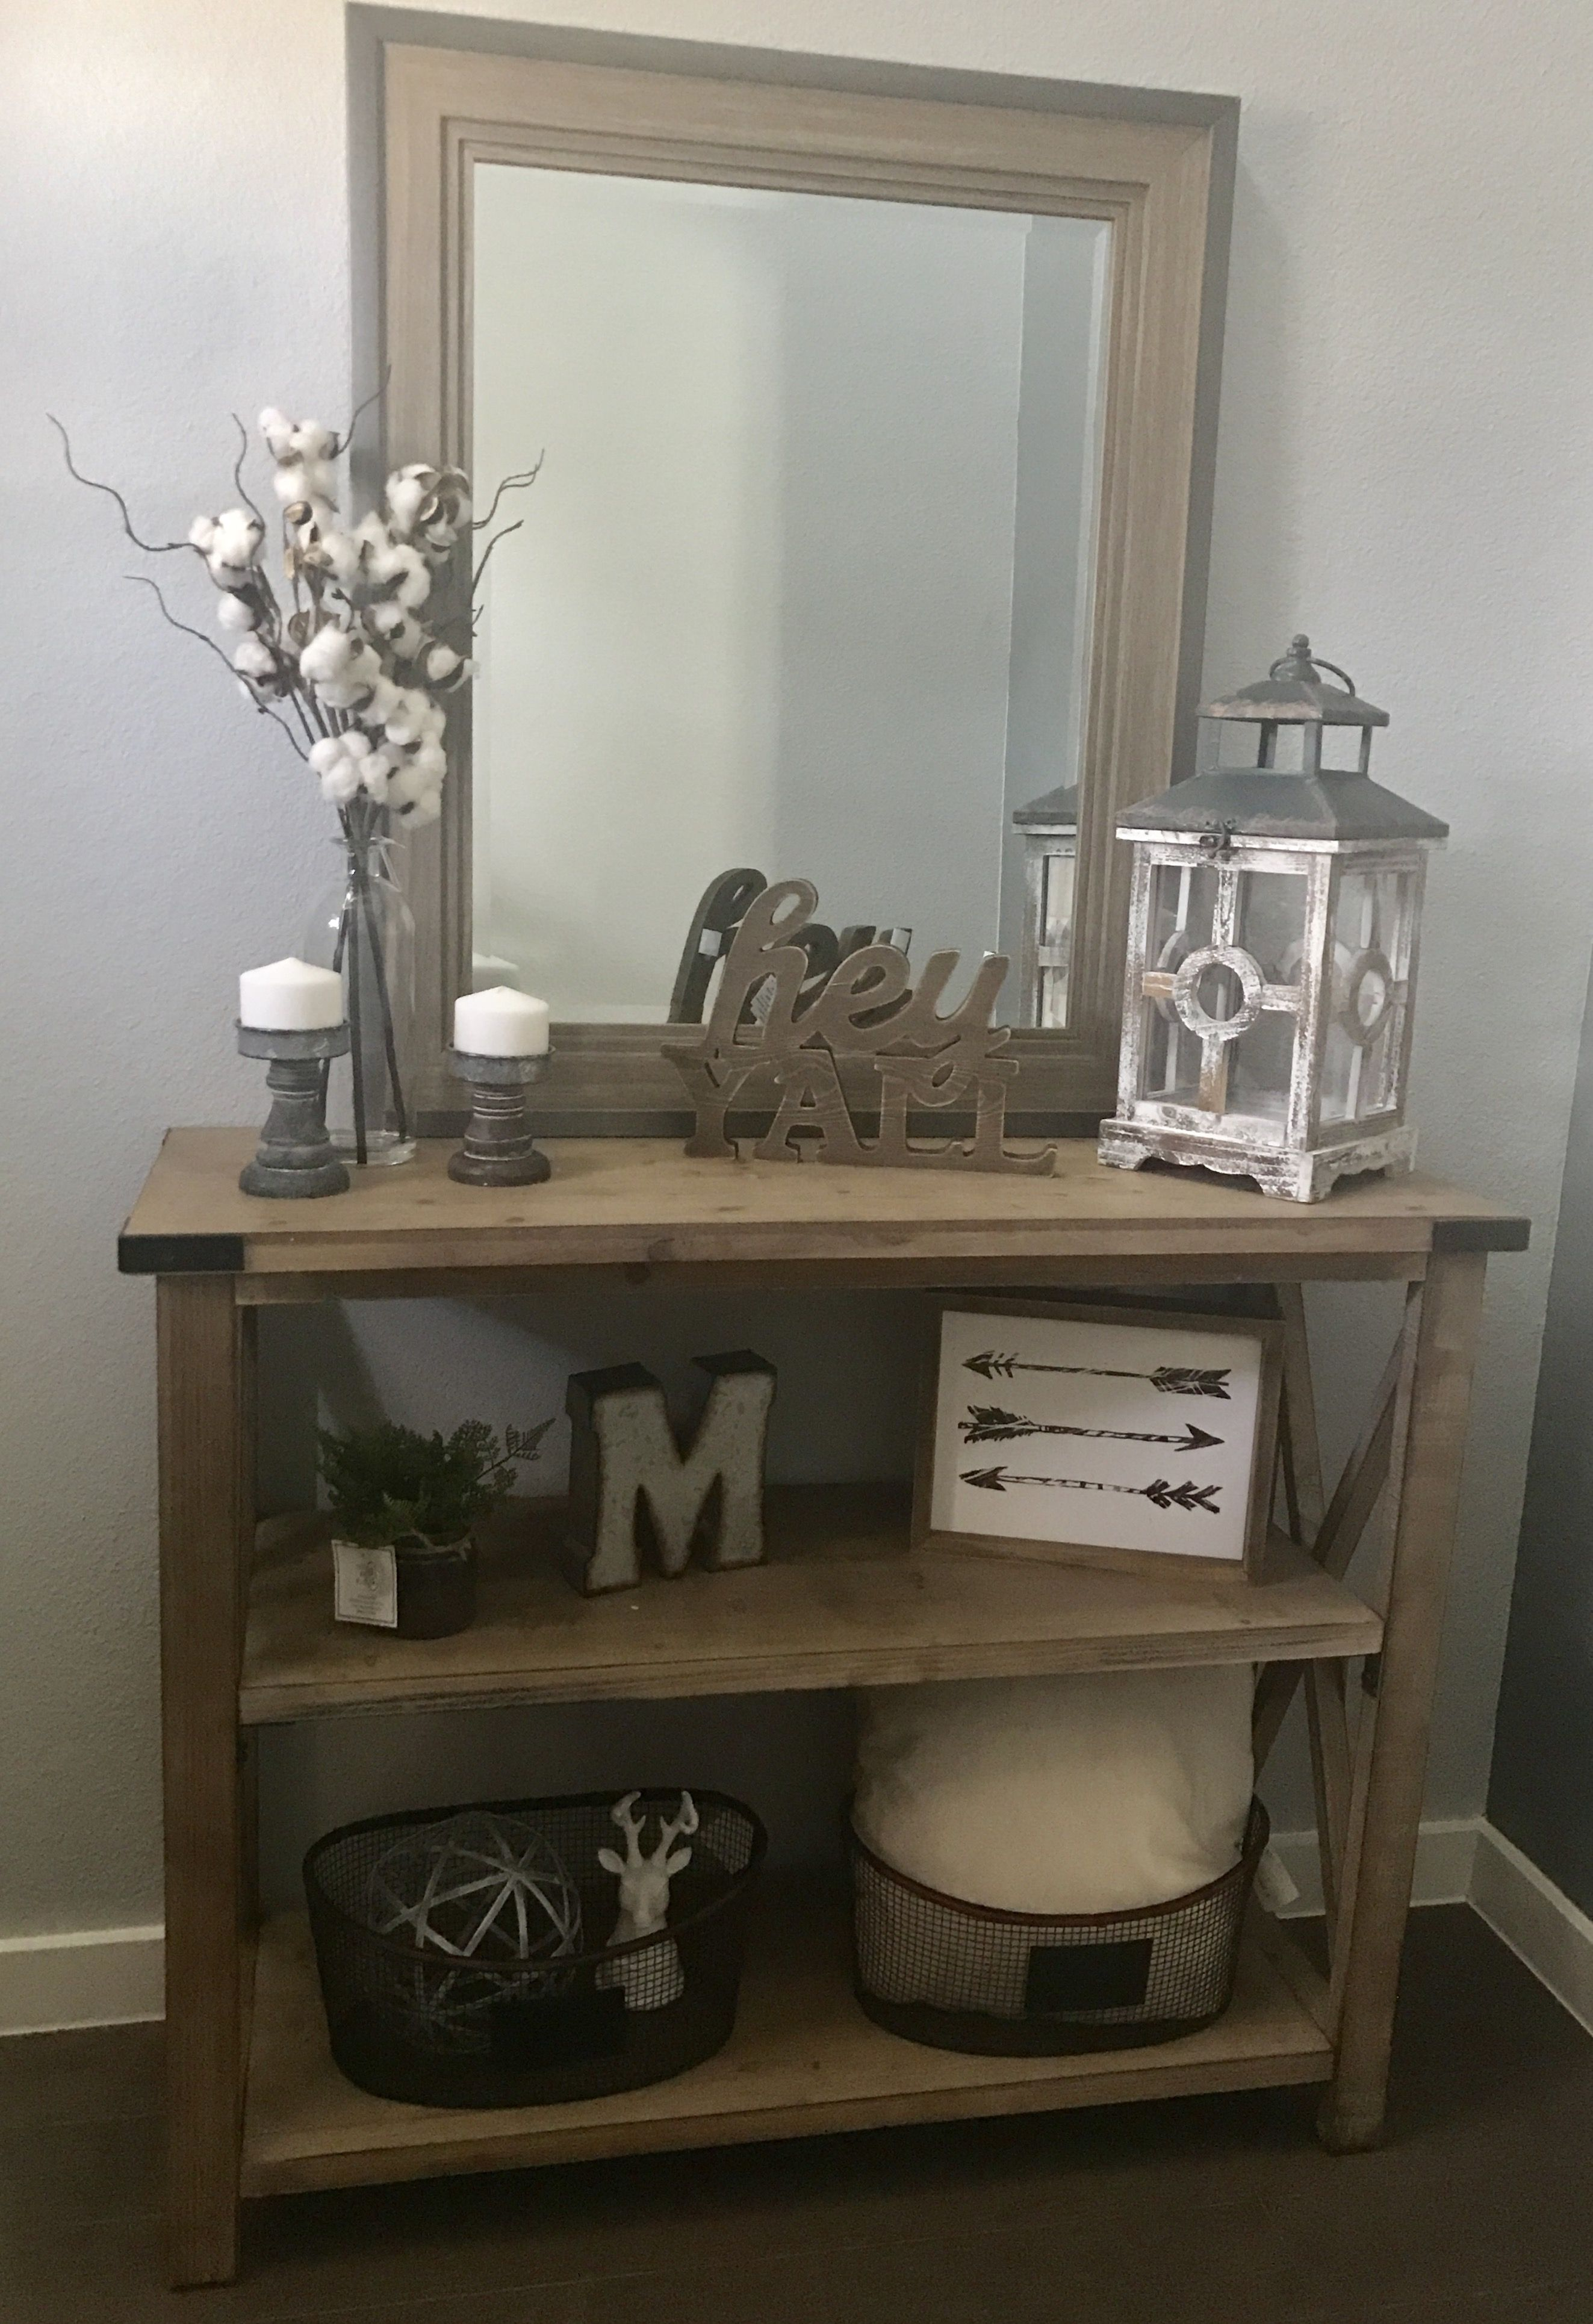 new modern farmhouse entry way console table decor mcmillen home accent living room chest drawers narrow depth bronze lamp target chaise lounge cushions adirondack chairs drawer